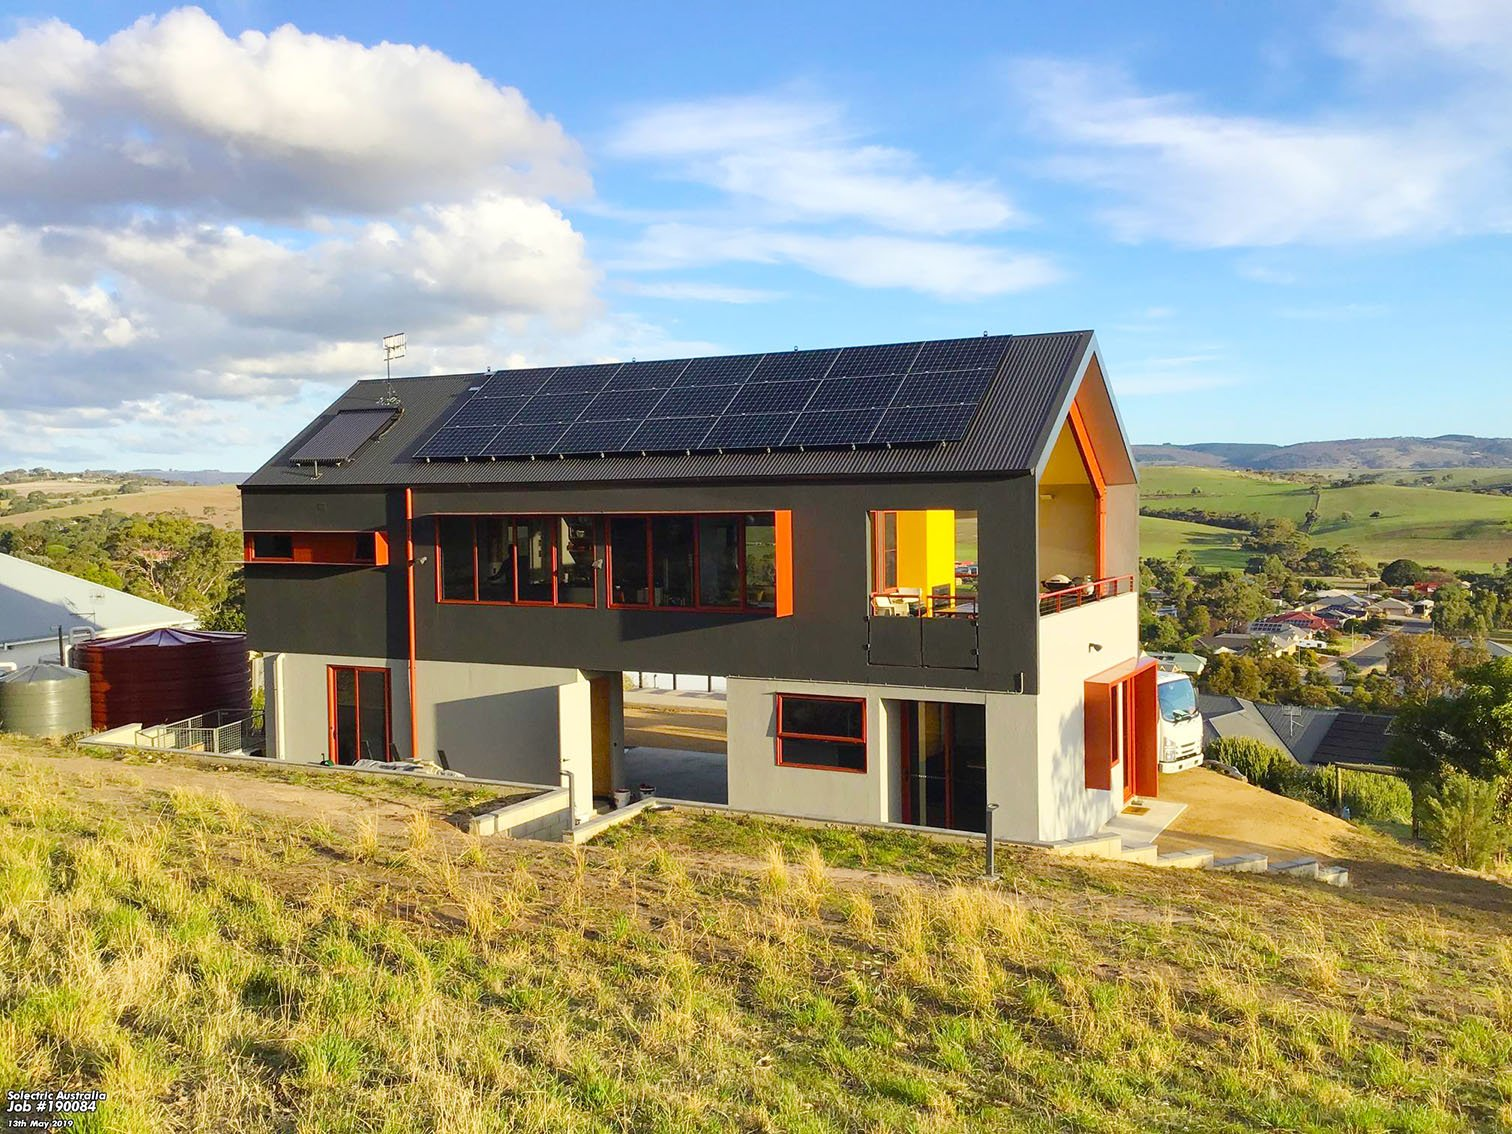 Solectric Australia Residential Solar System Installation Service